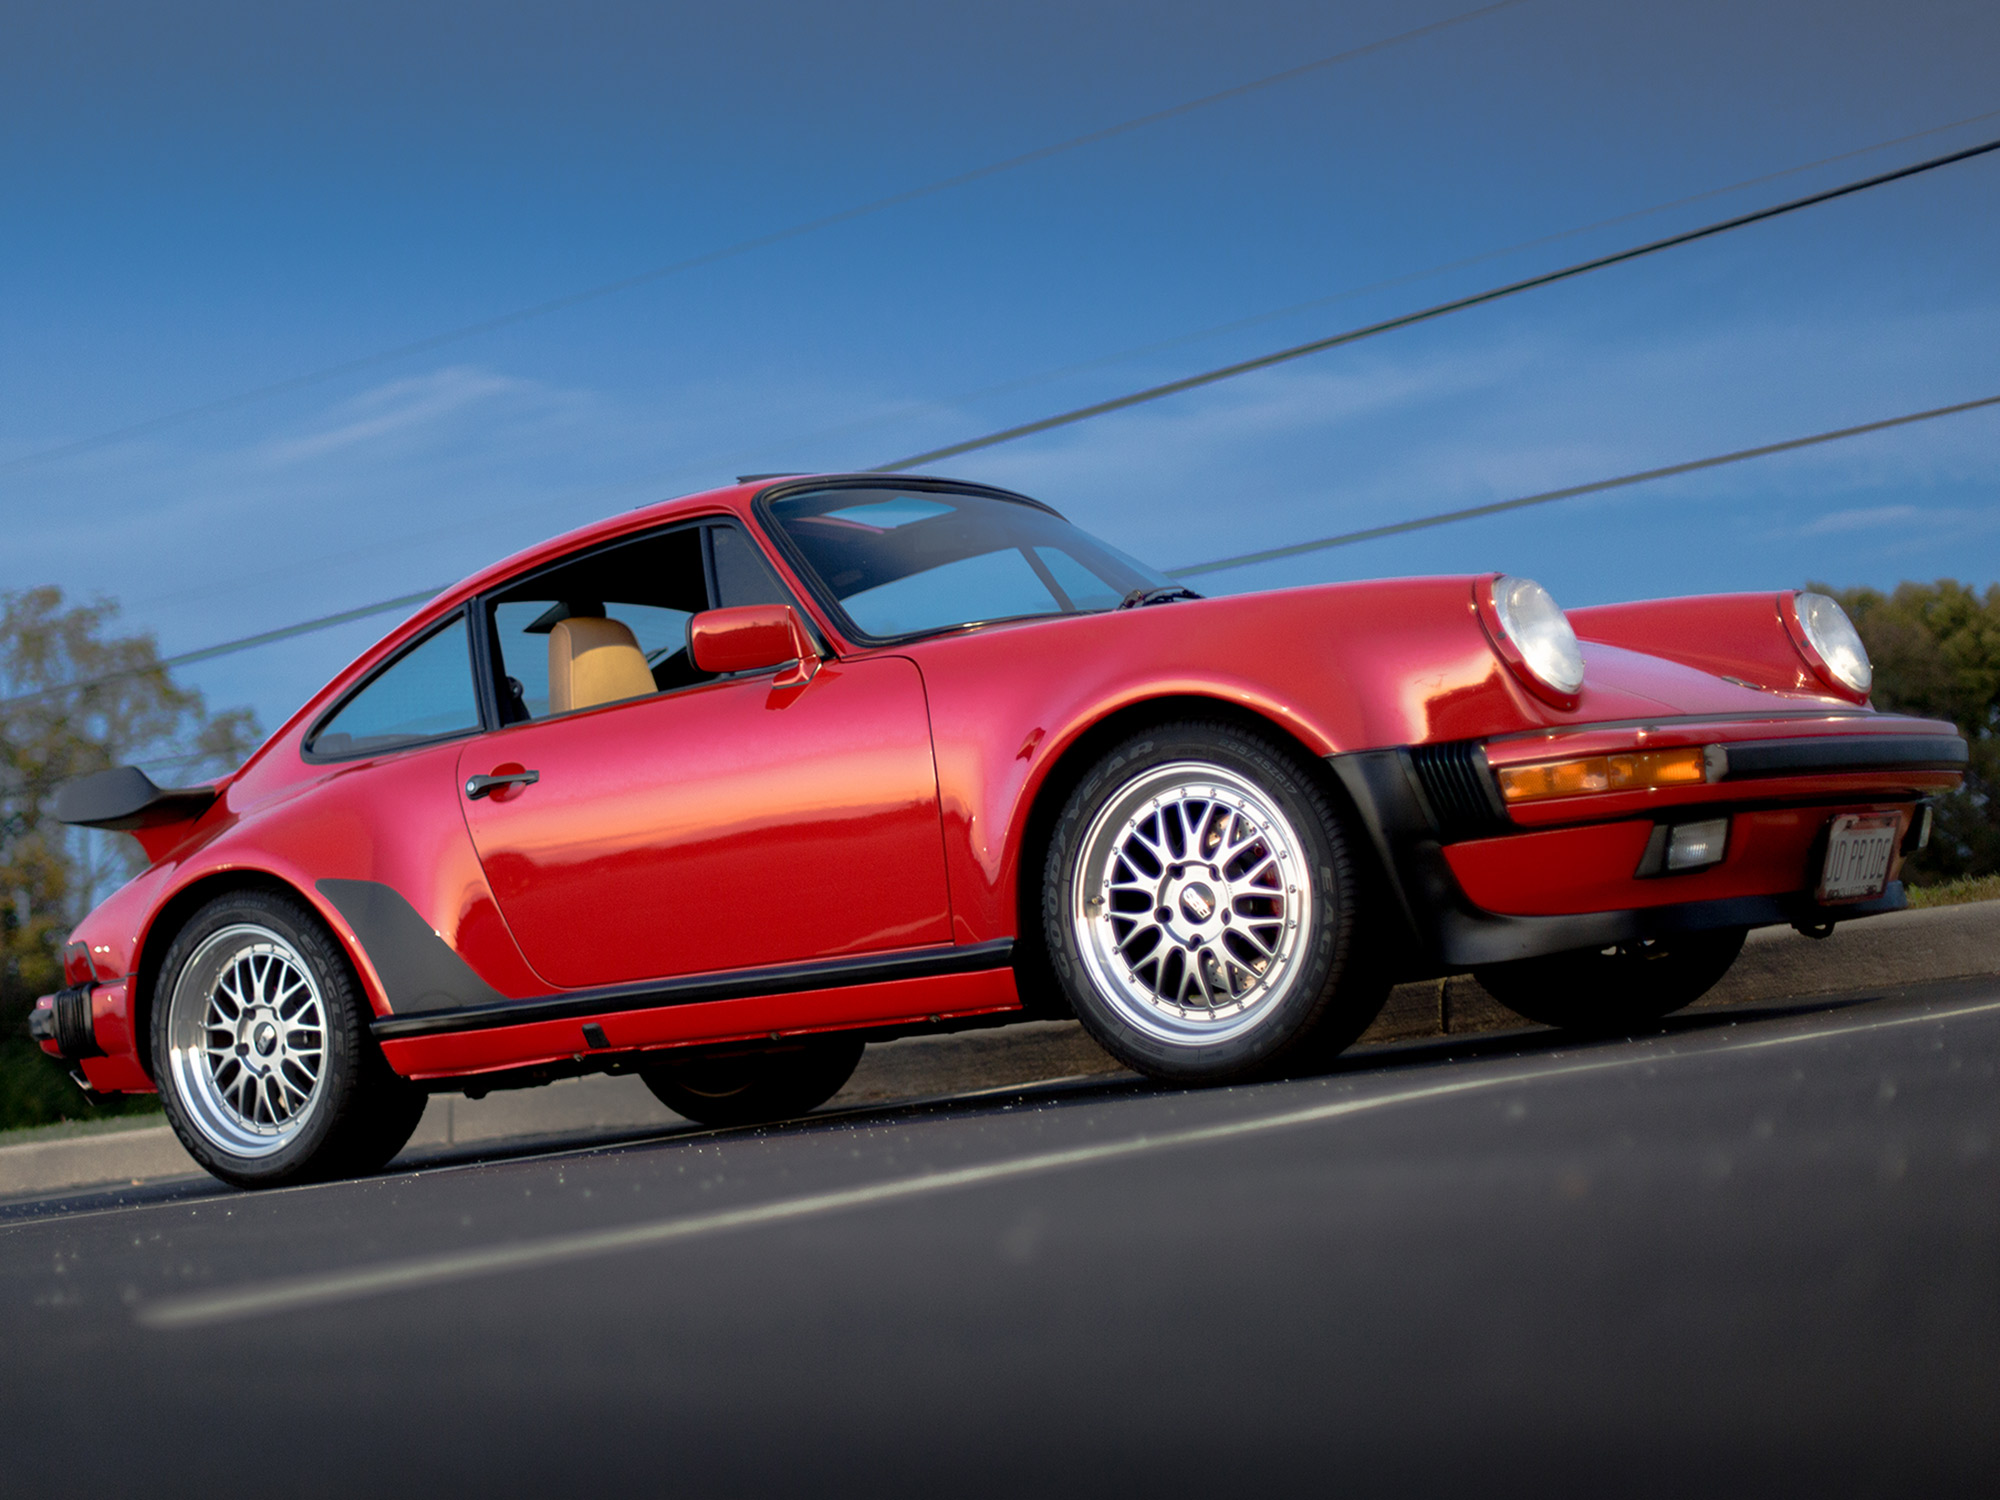 1988 Porsche 911 Turbo Coupe in Guards Red